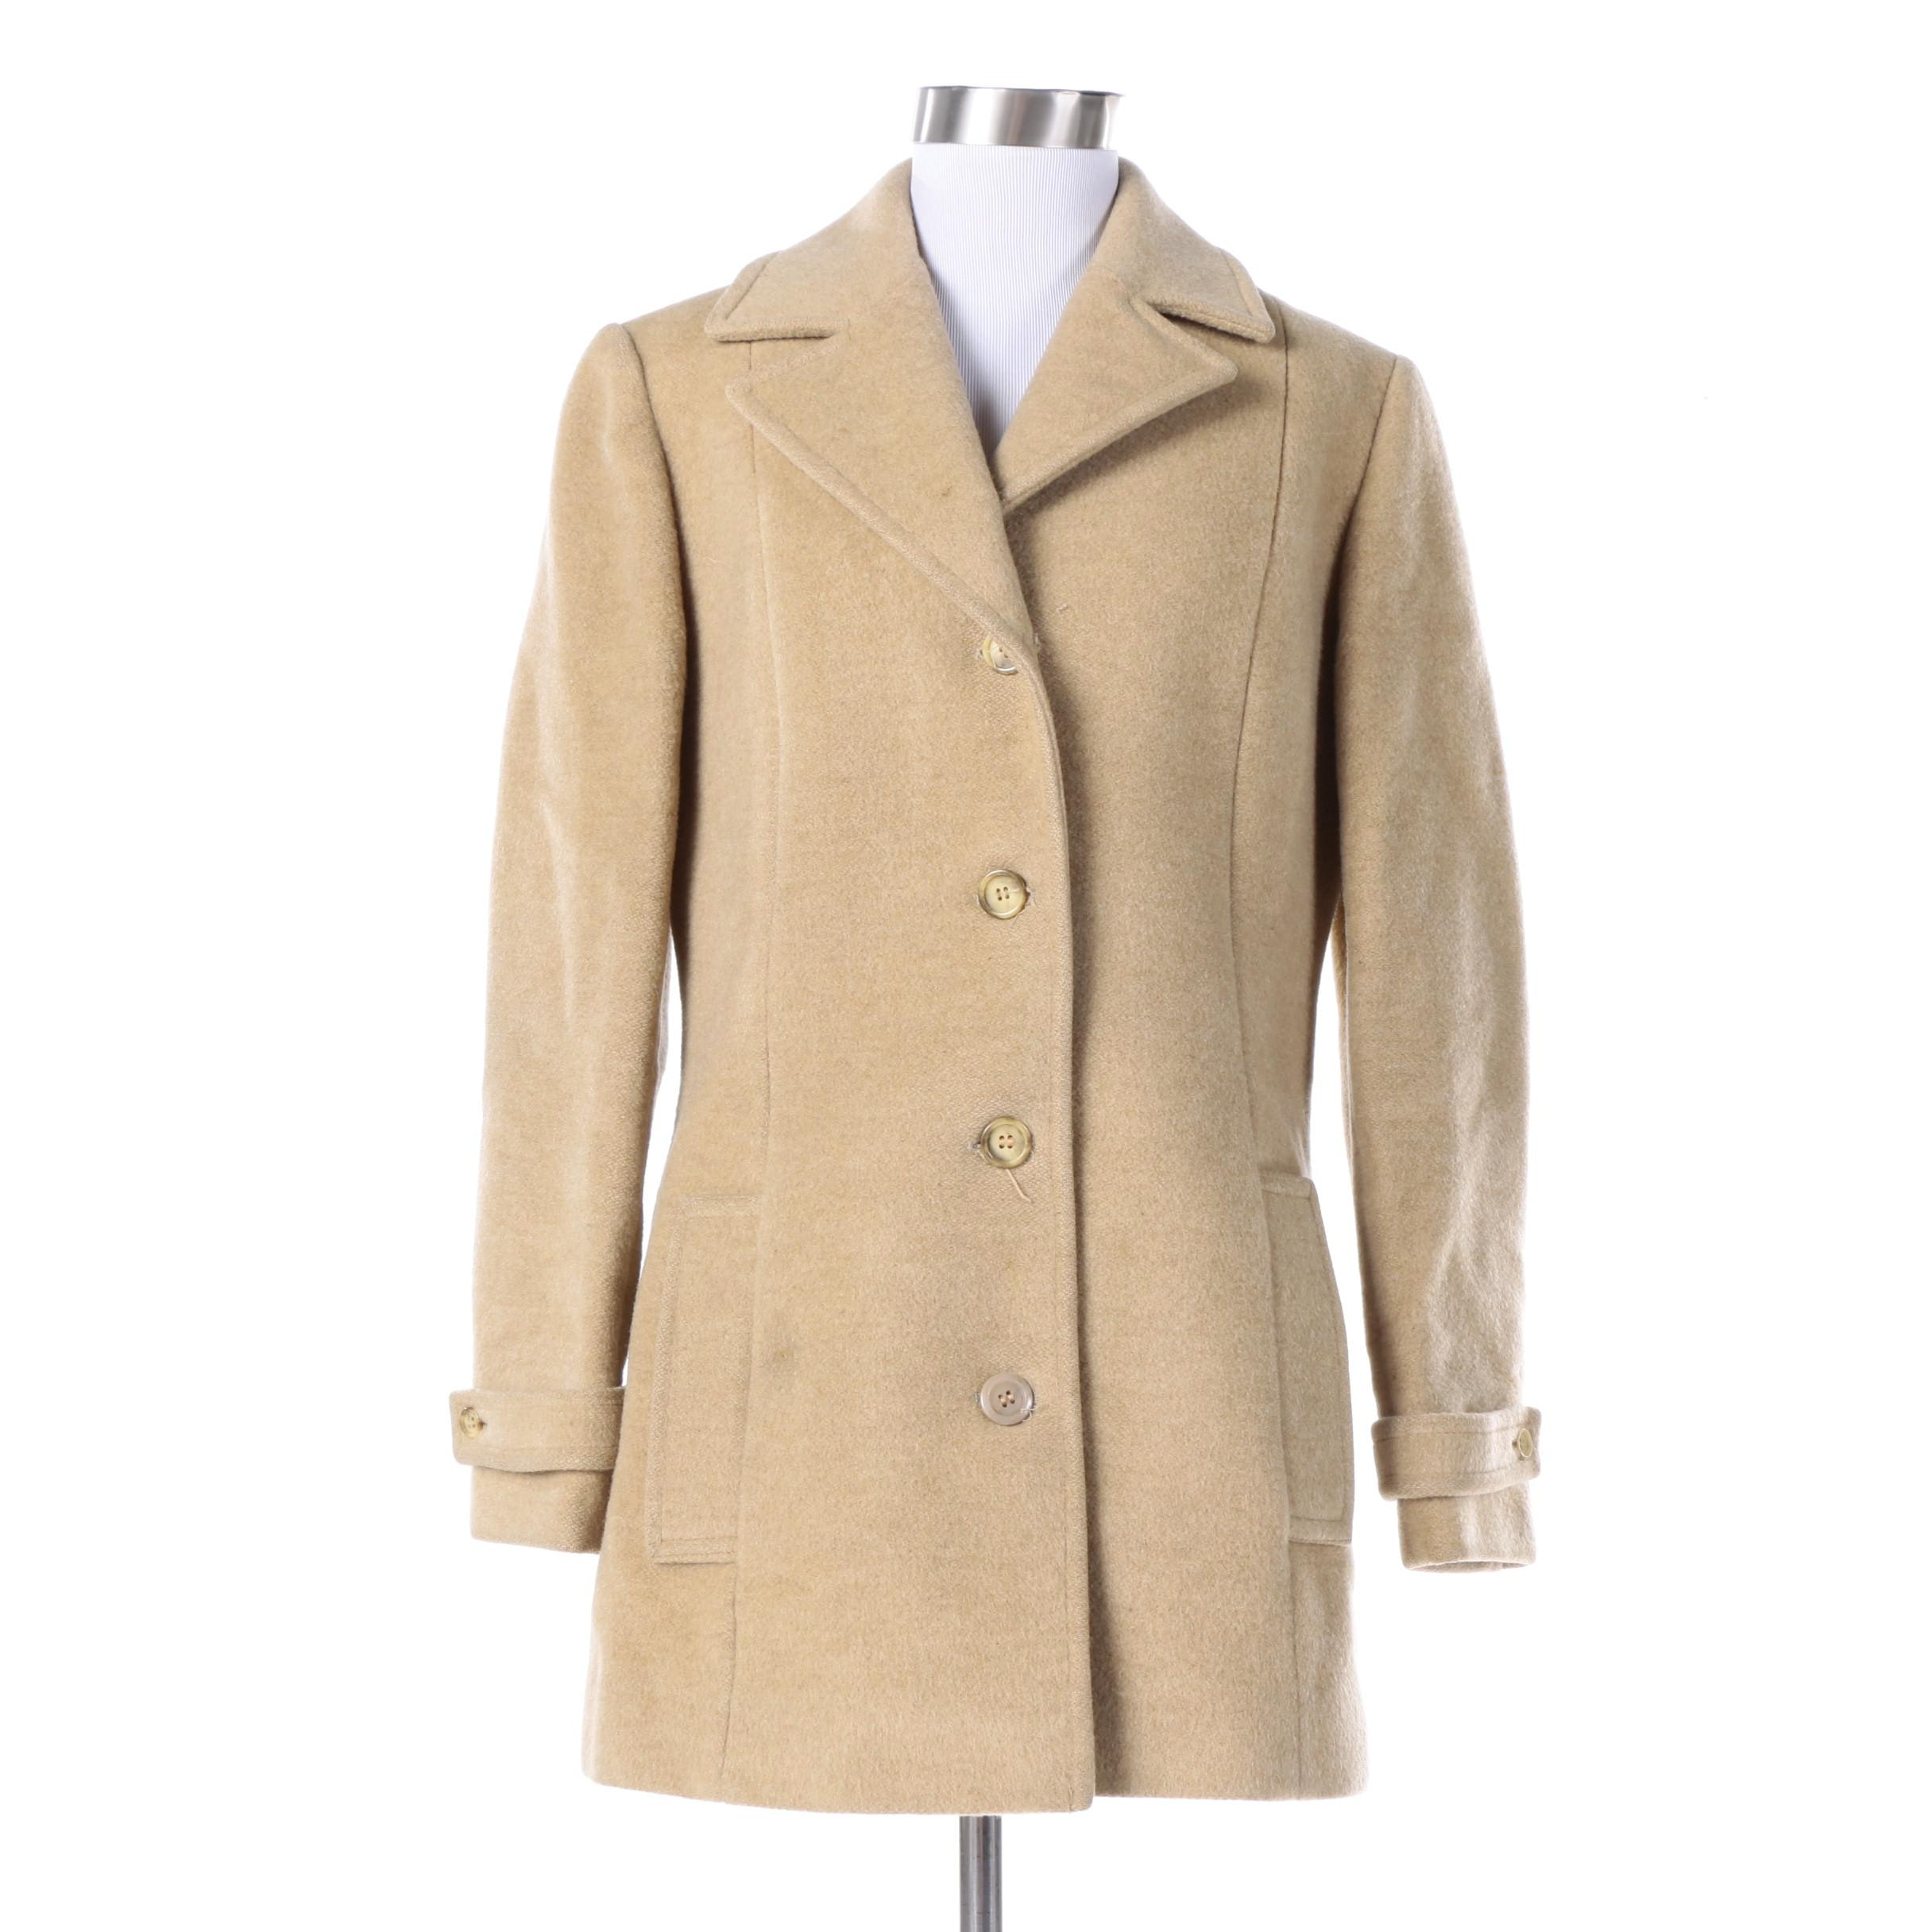 Vintage Pendleton Beige Virgin Wool Coat